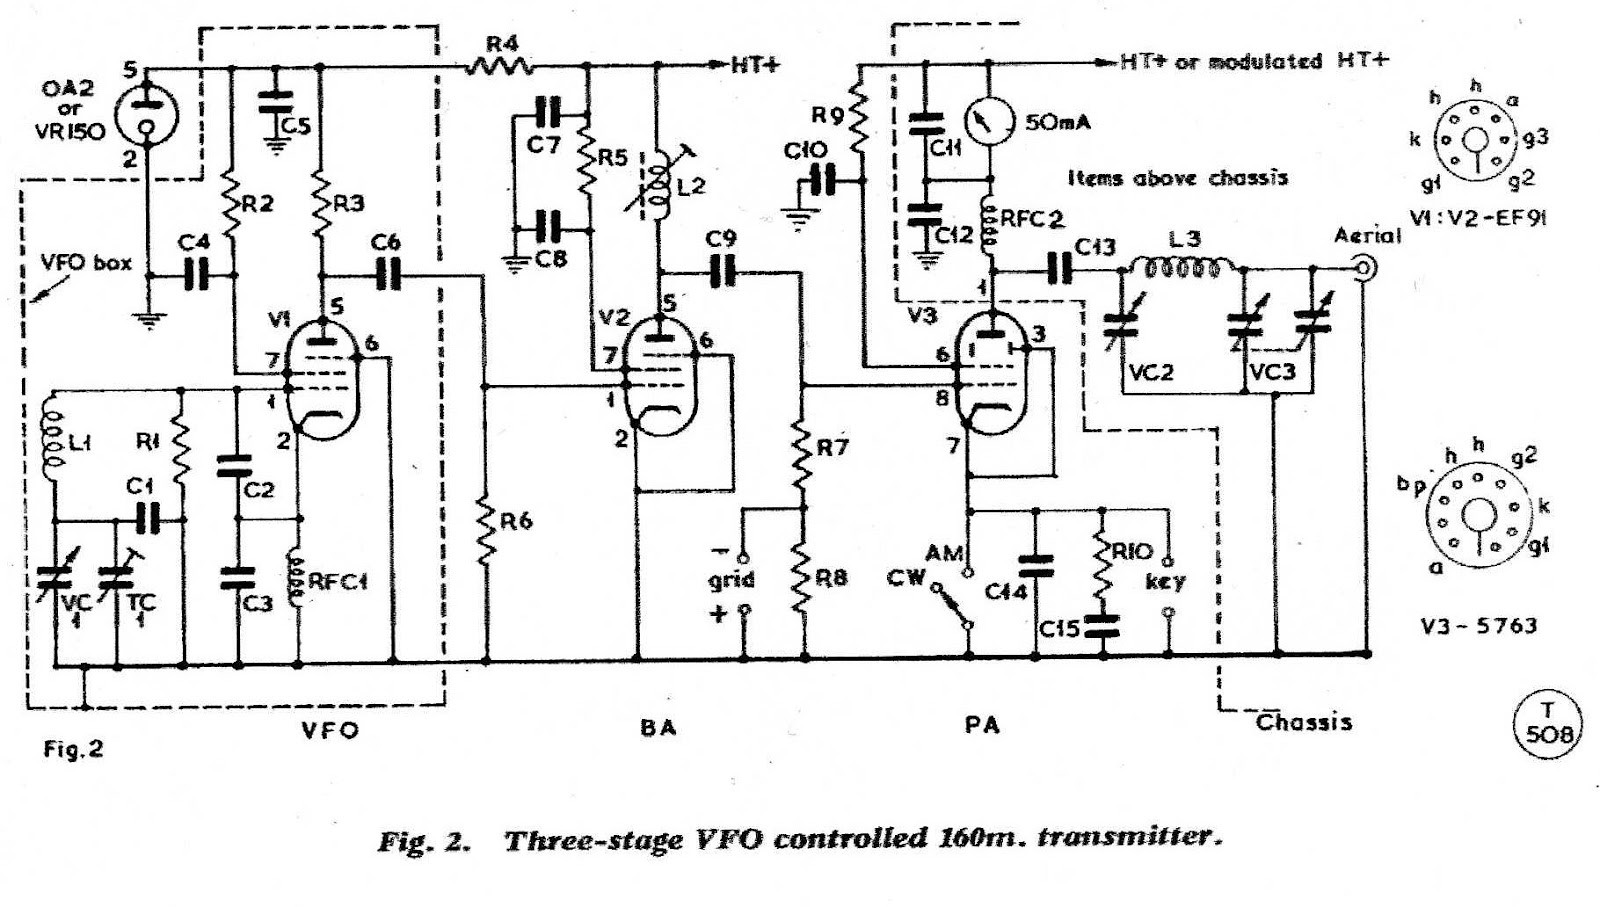 Homebrew RF Circuit Design Ideas in addition Schemview in addition Topband Transmitter Fgrayer moreover Slopinginvl additionally FM IF MW Radio Receiver Circuit Using LA1260 Integrated Circuit L41412. on 5 tube radio schematic